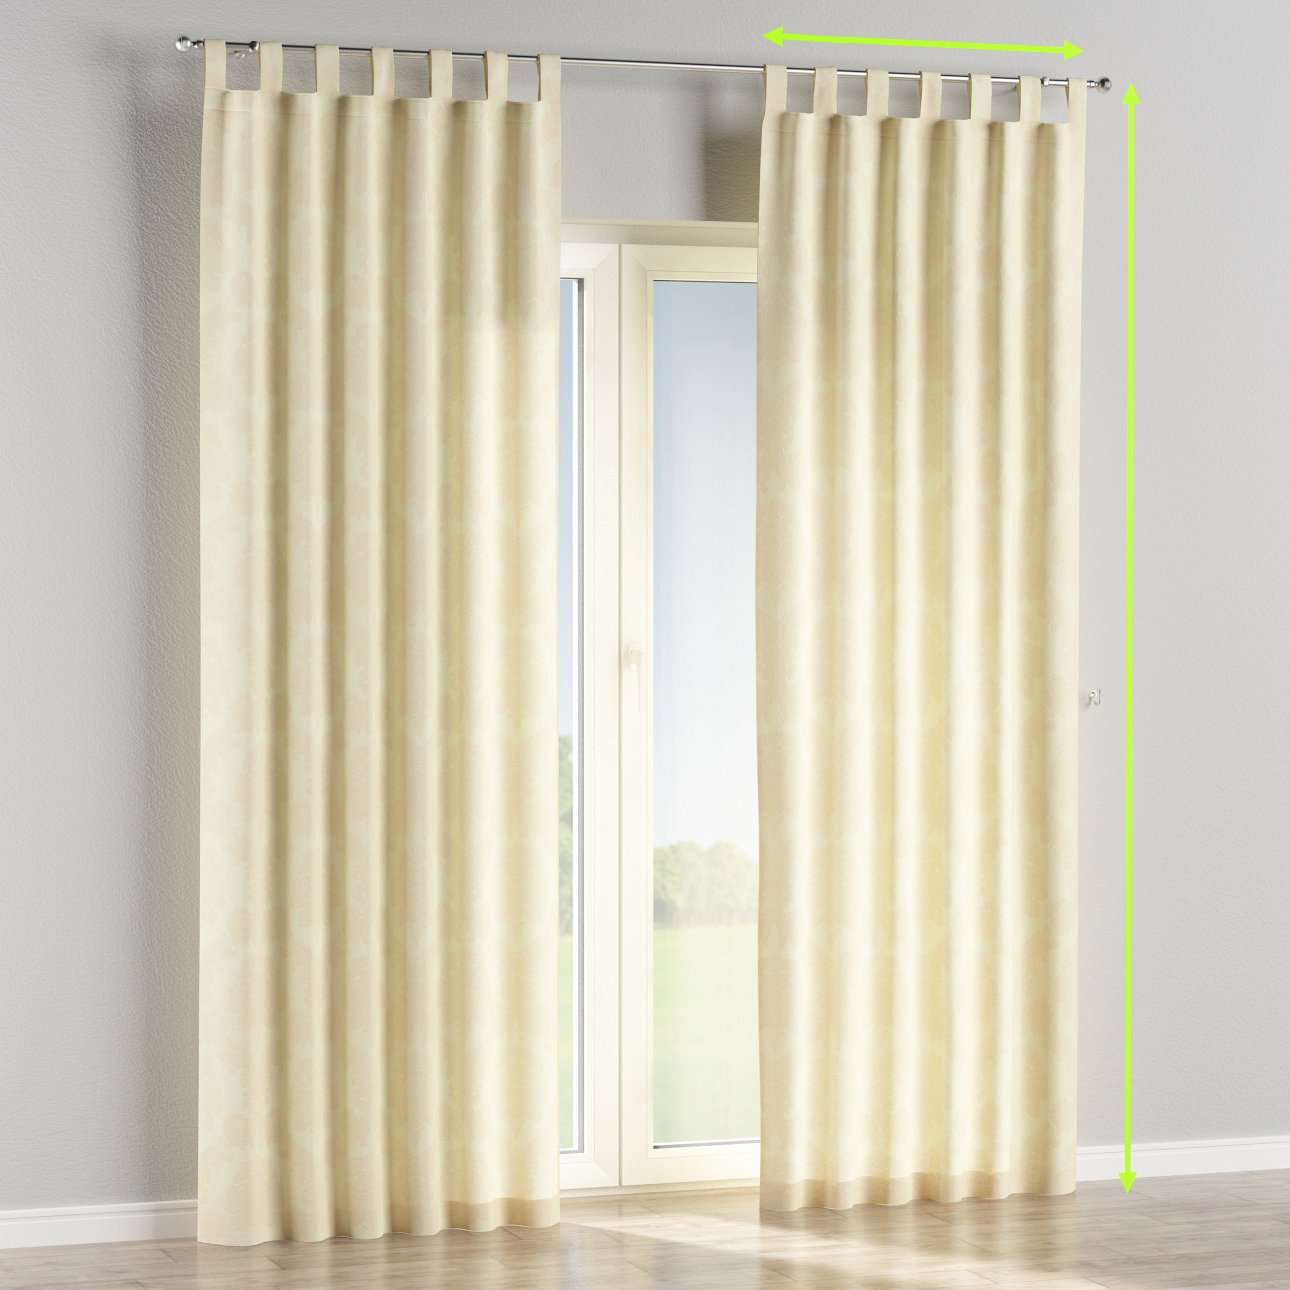 Tab top lined curtains in collection Damasco, fabric: 613-01